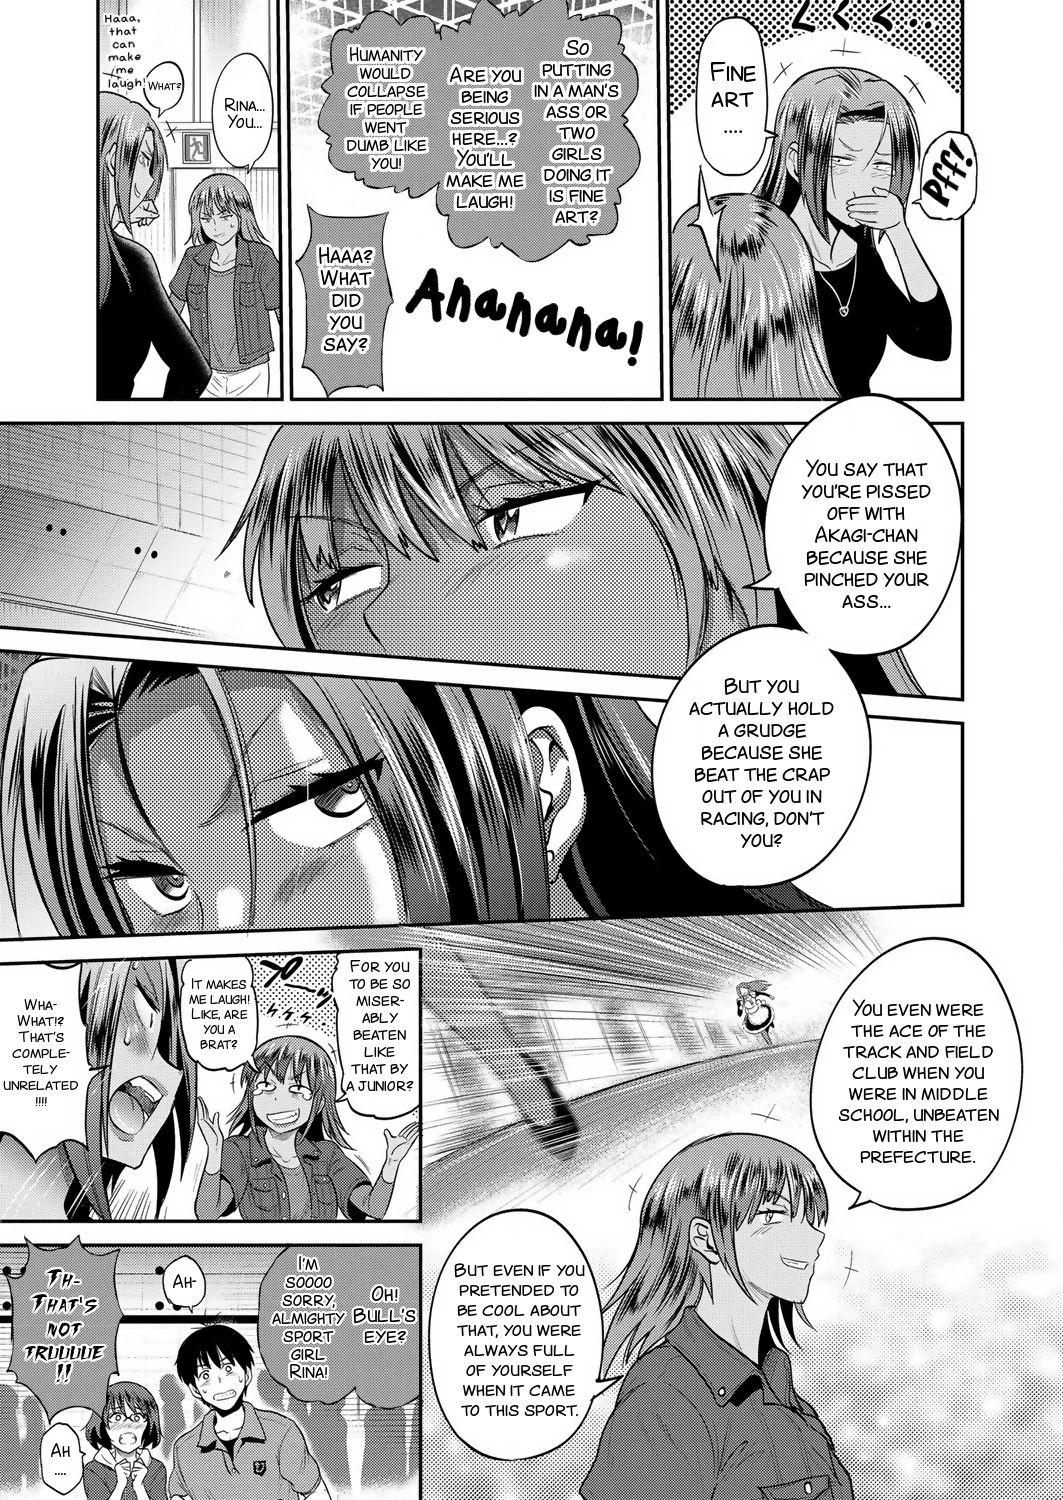 [DISTANCE] Joshi Luck! ~2 Years Later~ Ch. 7-8.5 [English] [SMDC] [Digital] 14